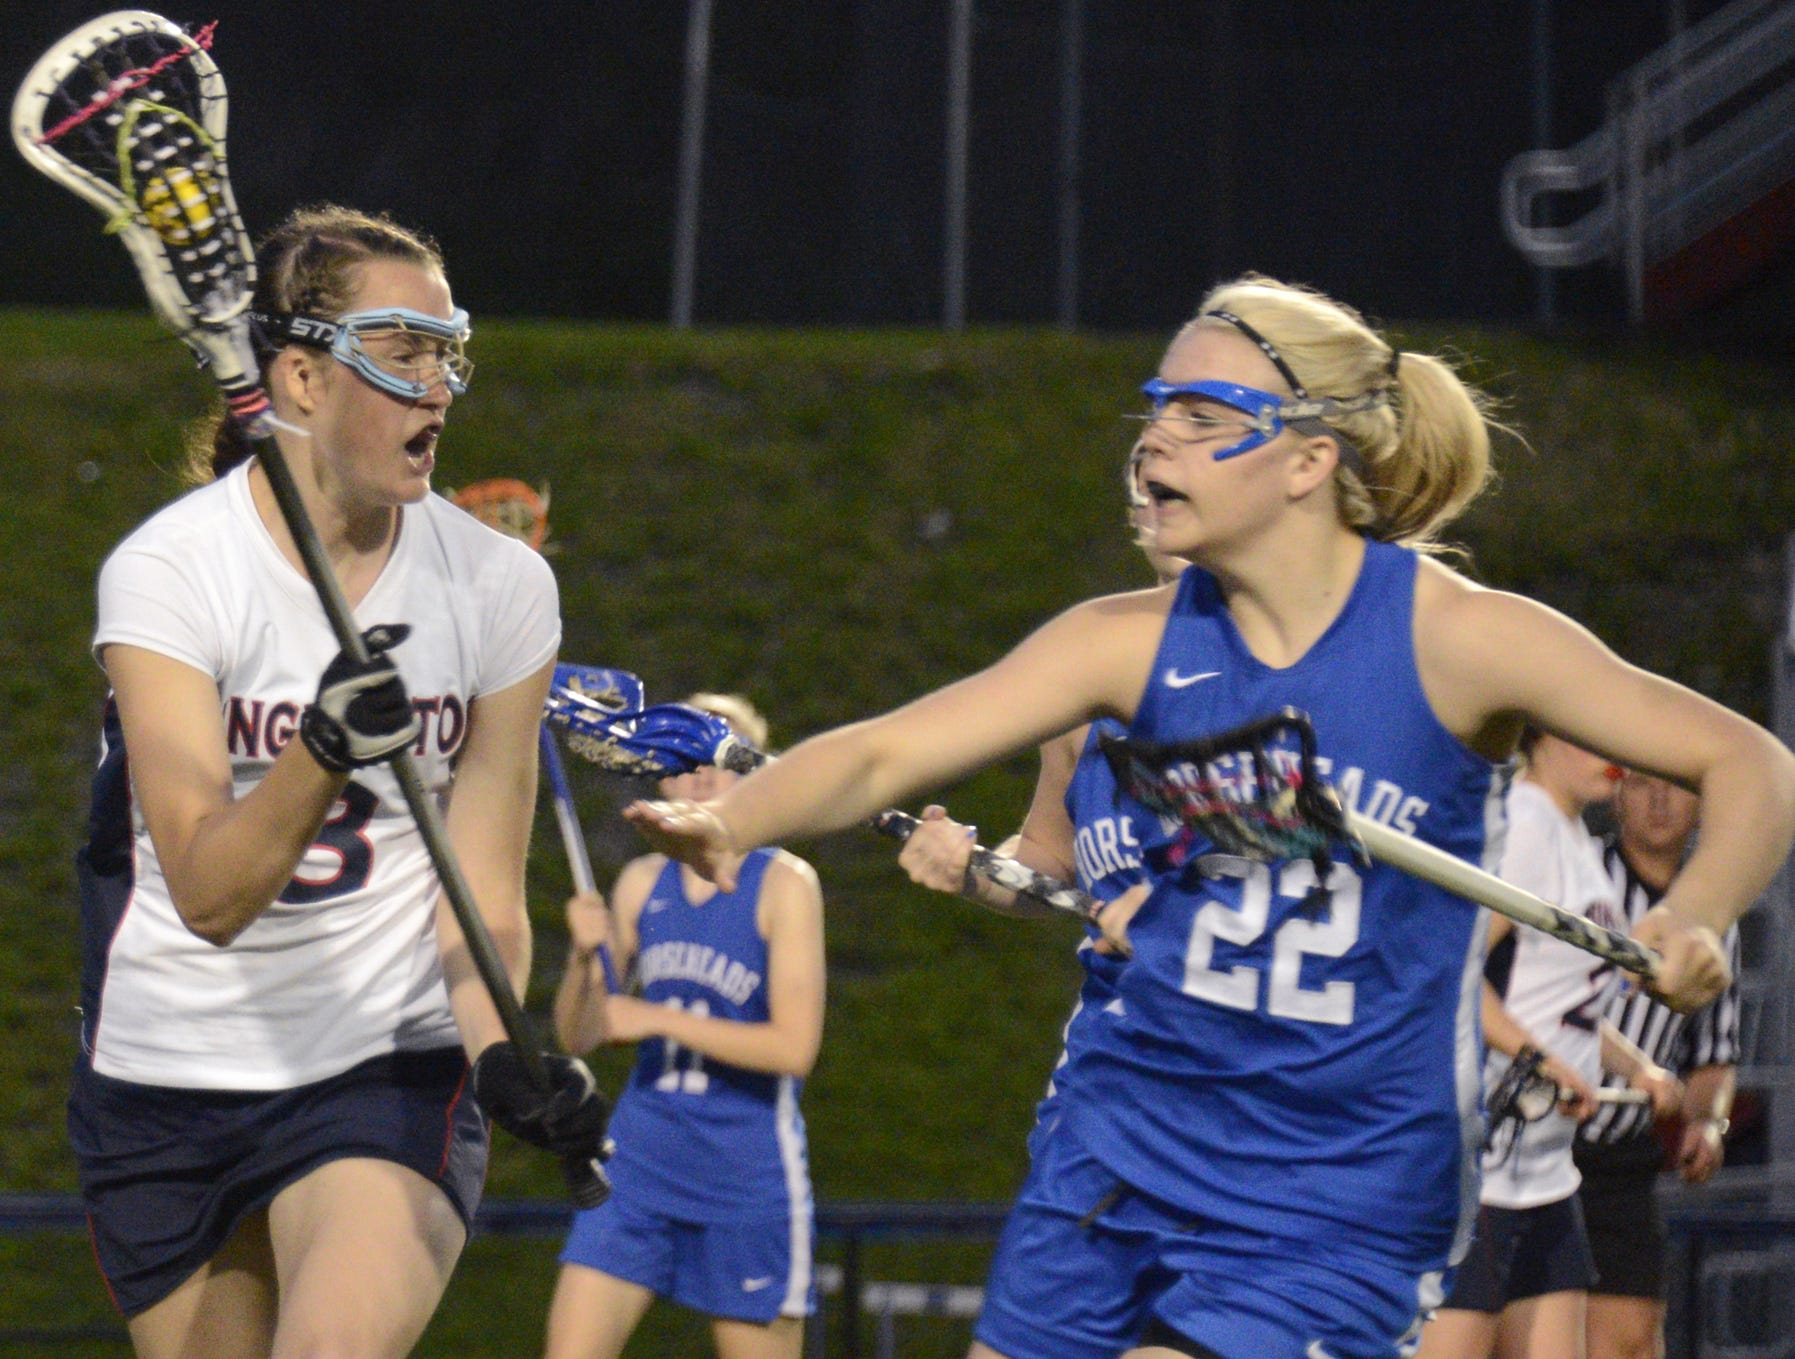 2013: Binghamton's Erin Holleran is defended by Horseheads' Cassidy Tingley in the second half Wednesday night at Alumni Stadium. Binghamton lost, 14-5. Katie Gaudet scored two goals for the Patriots.